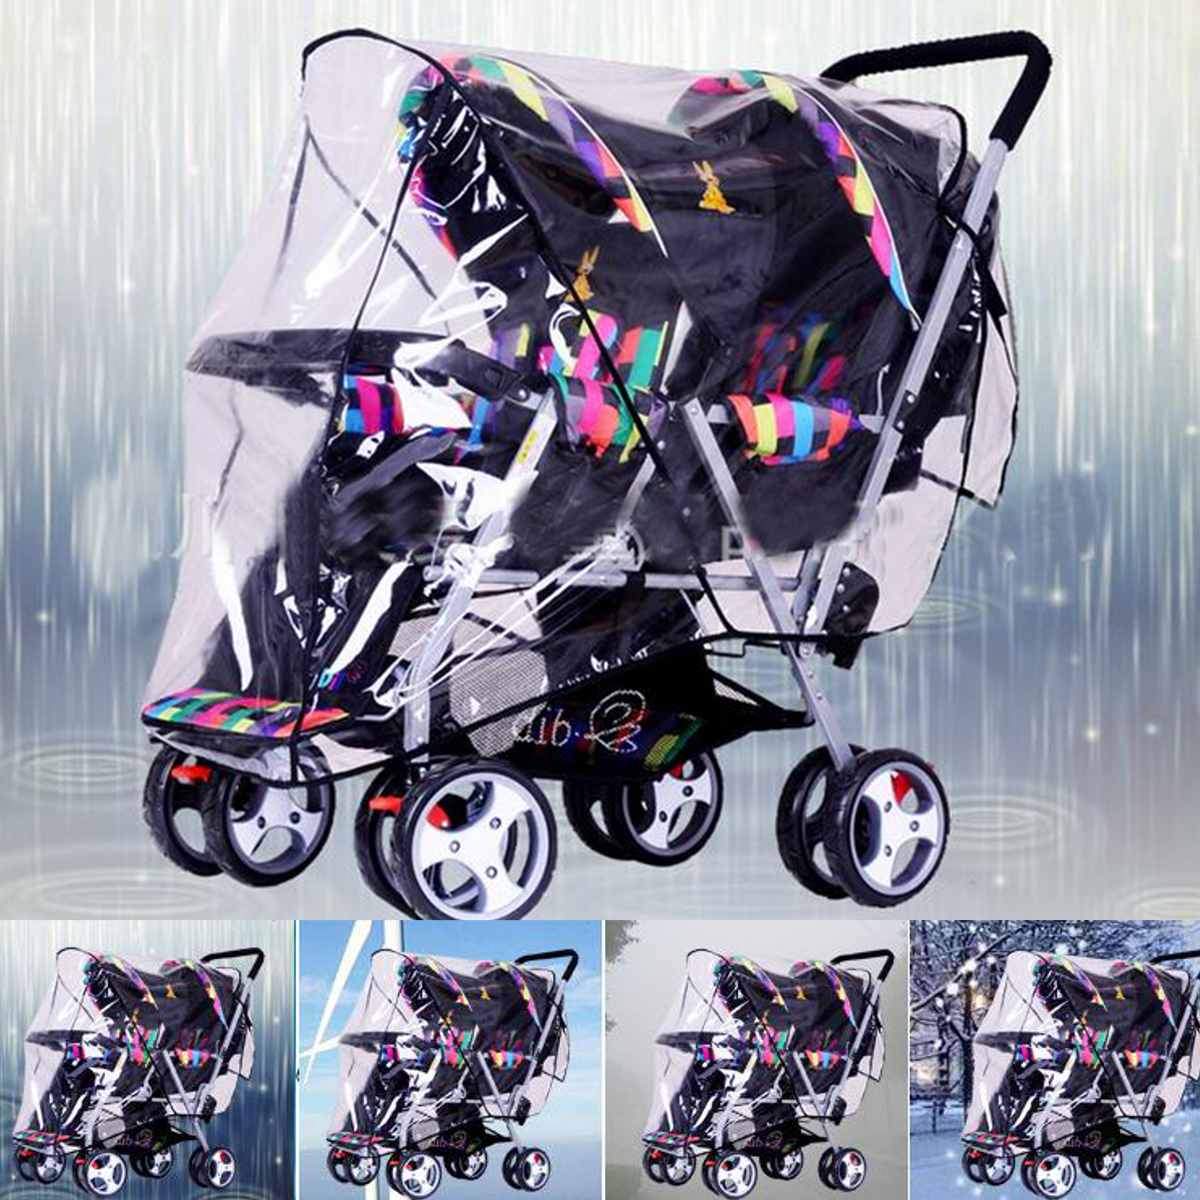 Double Stroller Rain Cover Us 8 38 32 Off Pvc Waterproof Stroller Rain Cover Weather Pram Baby Infant Double Pushchair Wind Shield Rain Covers Outdoors Rain Gear Canopy In